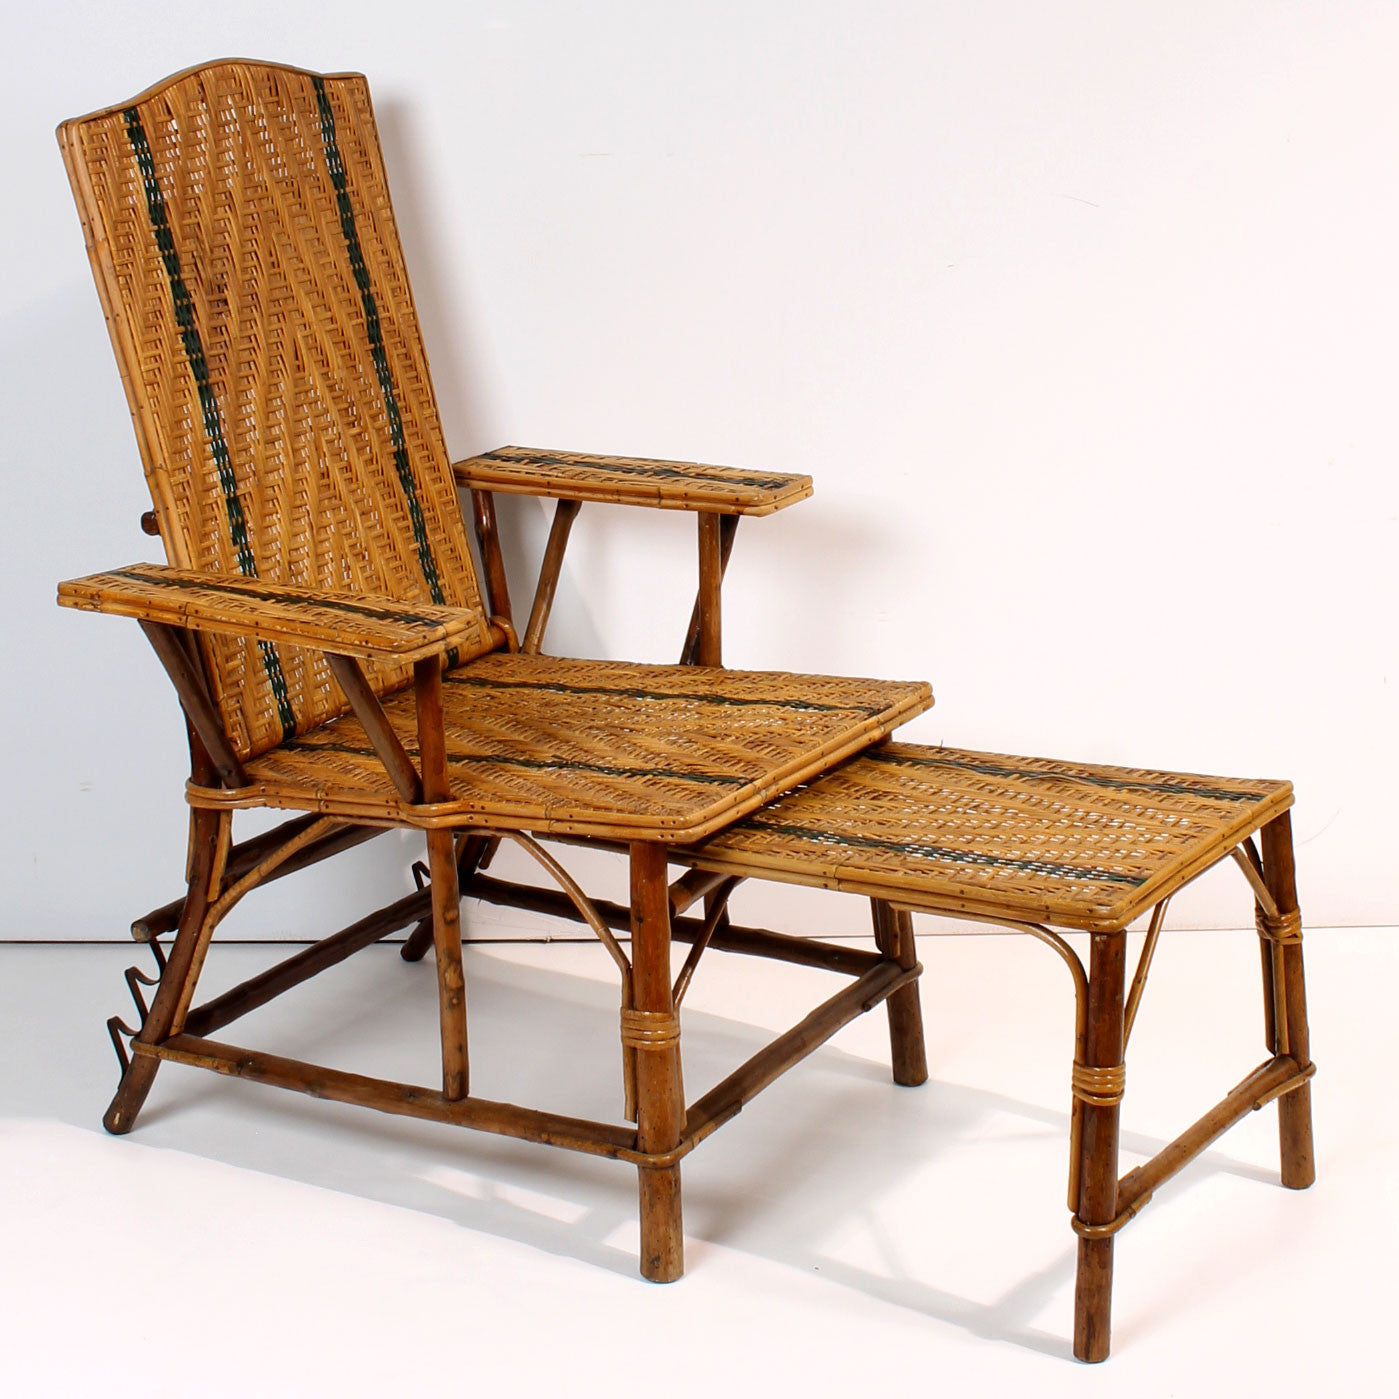 vintage french rattan chaise lounge with footrest fatto a mano antiques. Black Bedroom Furniture Sets. Home Design Ideas